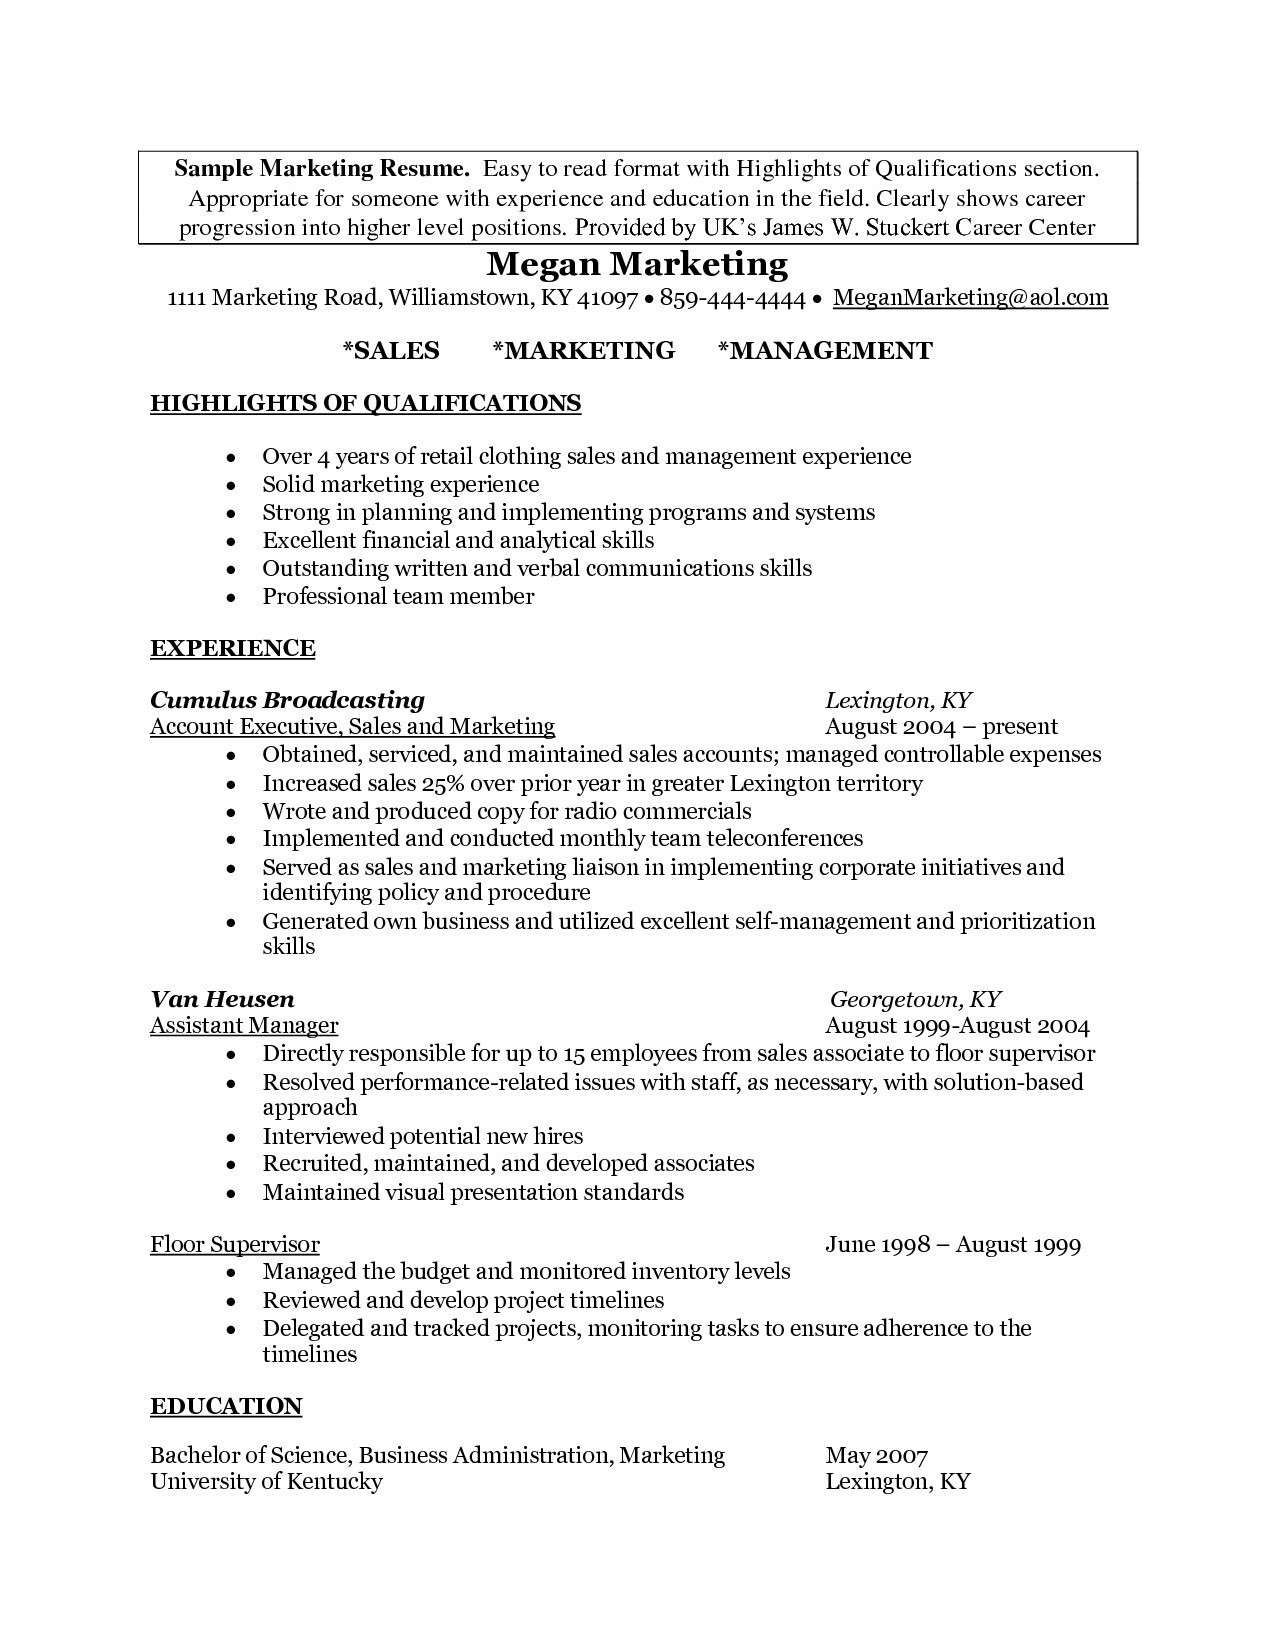 business magazine template beautiful letter template for marketing business valid resume cover letter of business magazine template